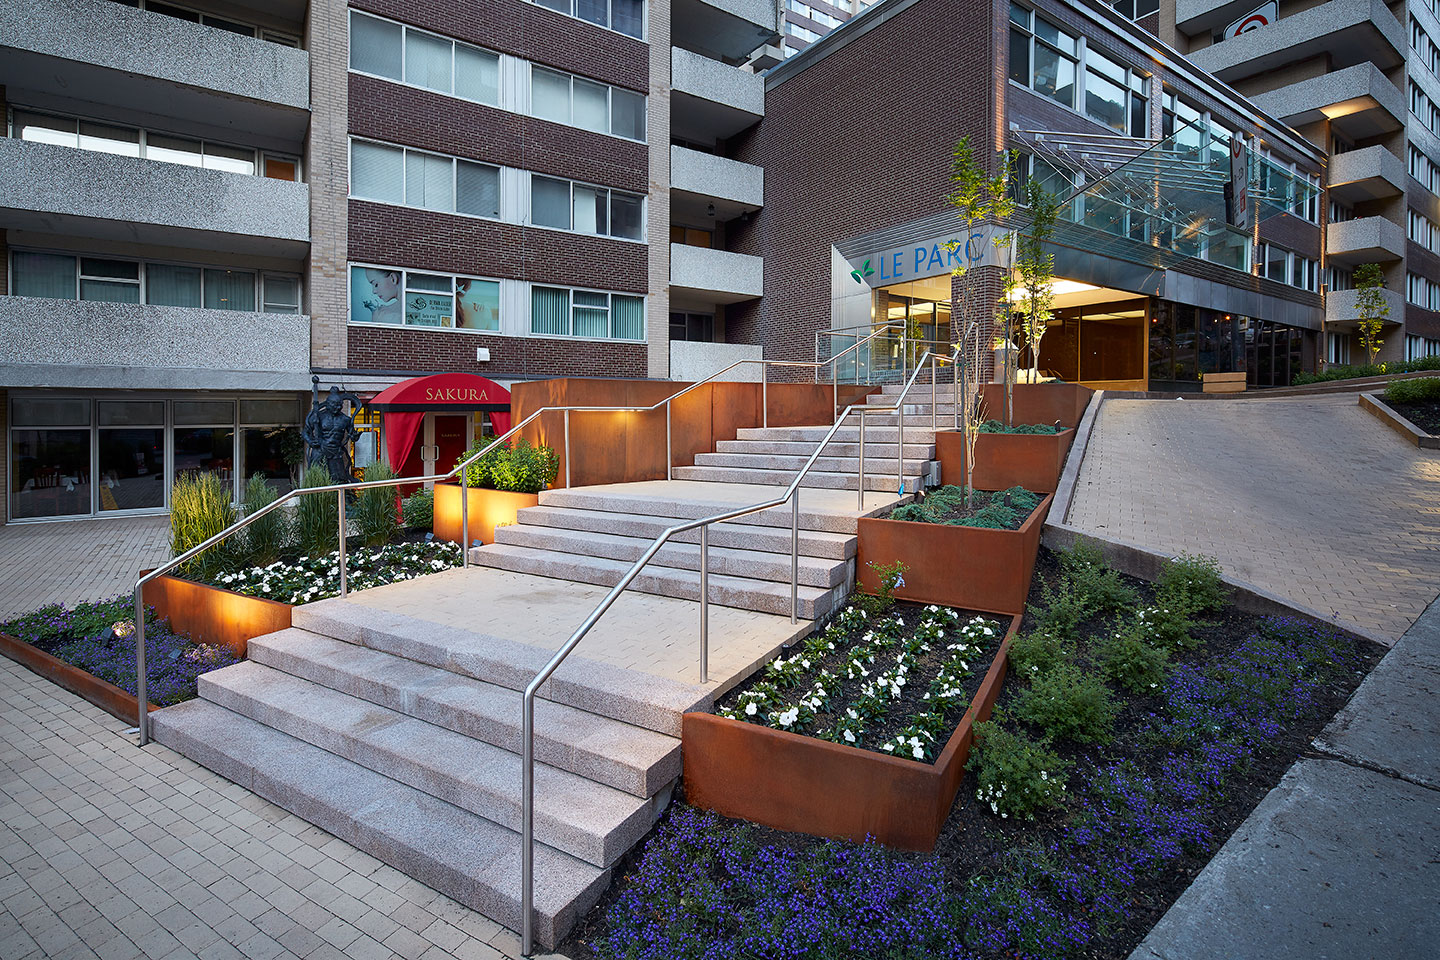 walkway-landscape-architecture-cohlmeyer.jpg